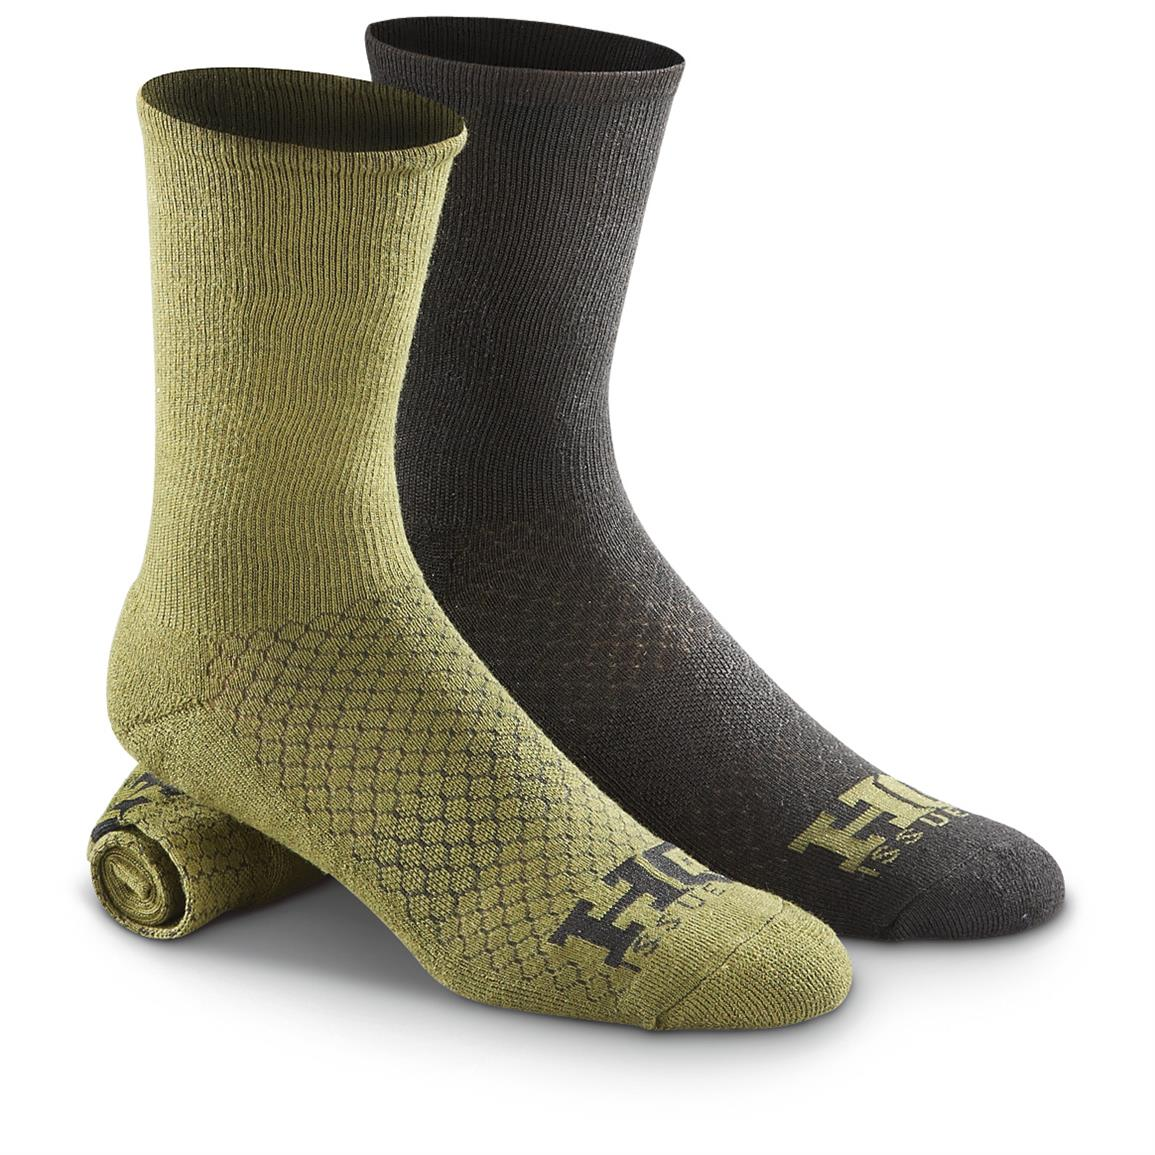 HQ ISSUE Tactical Socks, 10 Pairs, Olive / Black